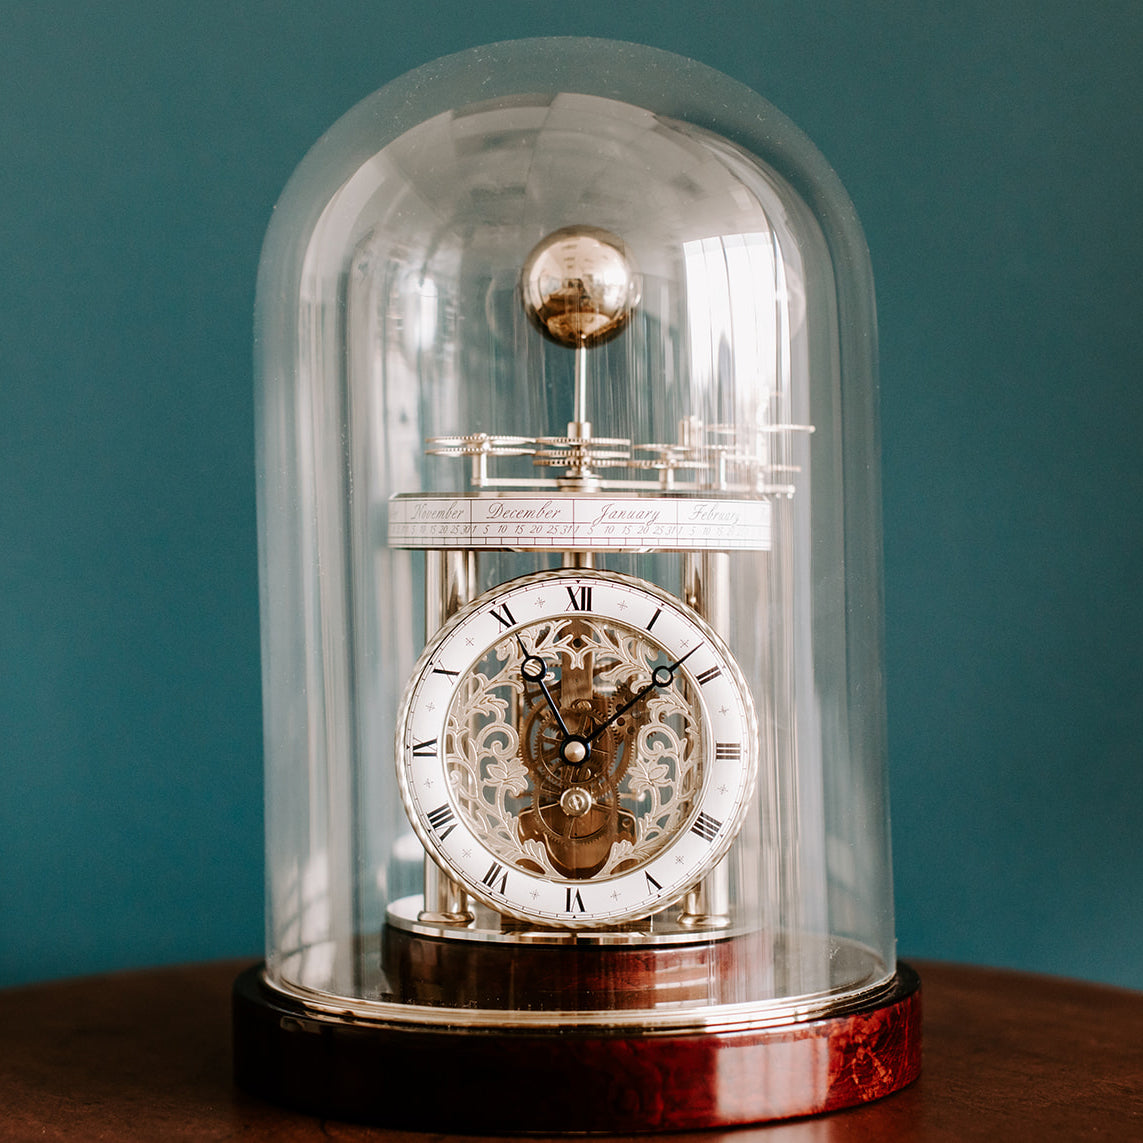 6 Steps to Replacing Your Clock Movement